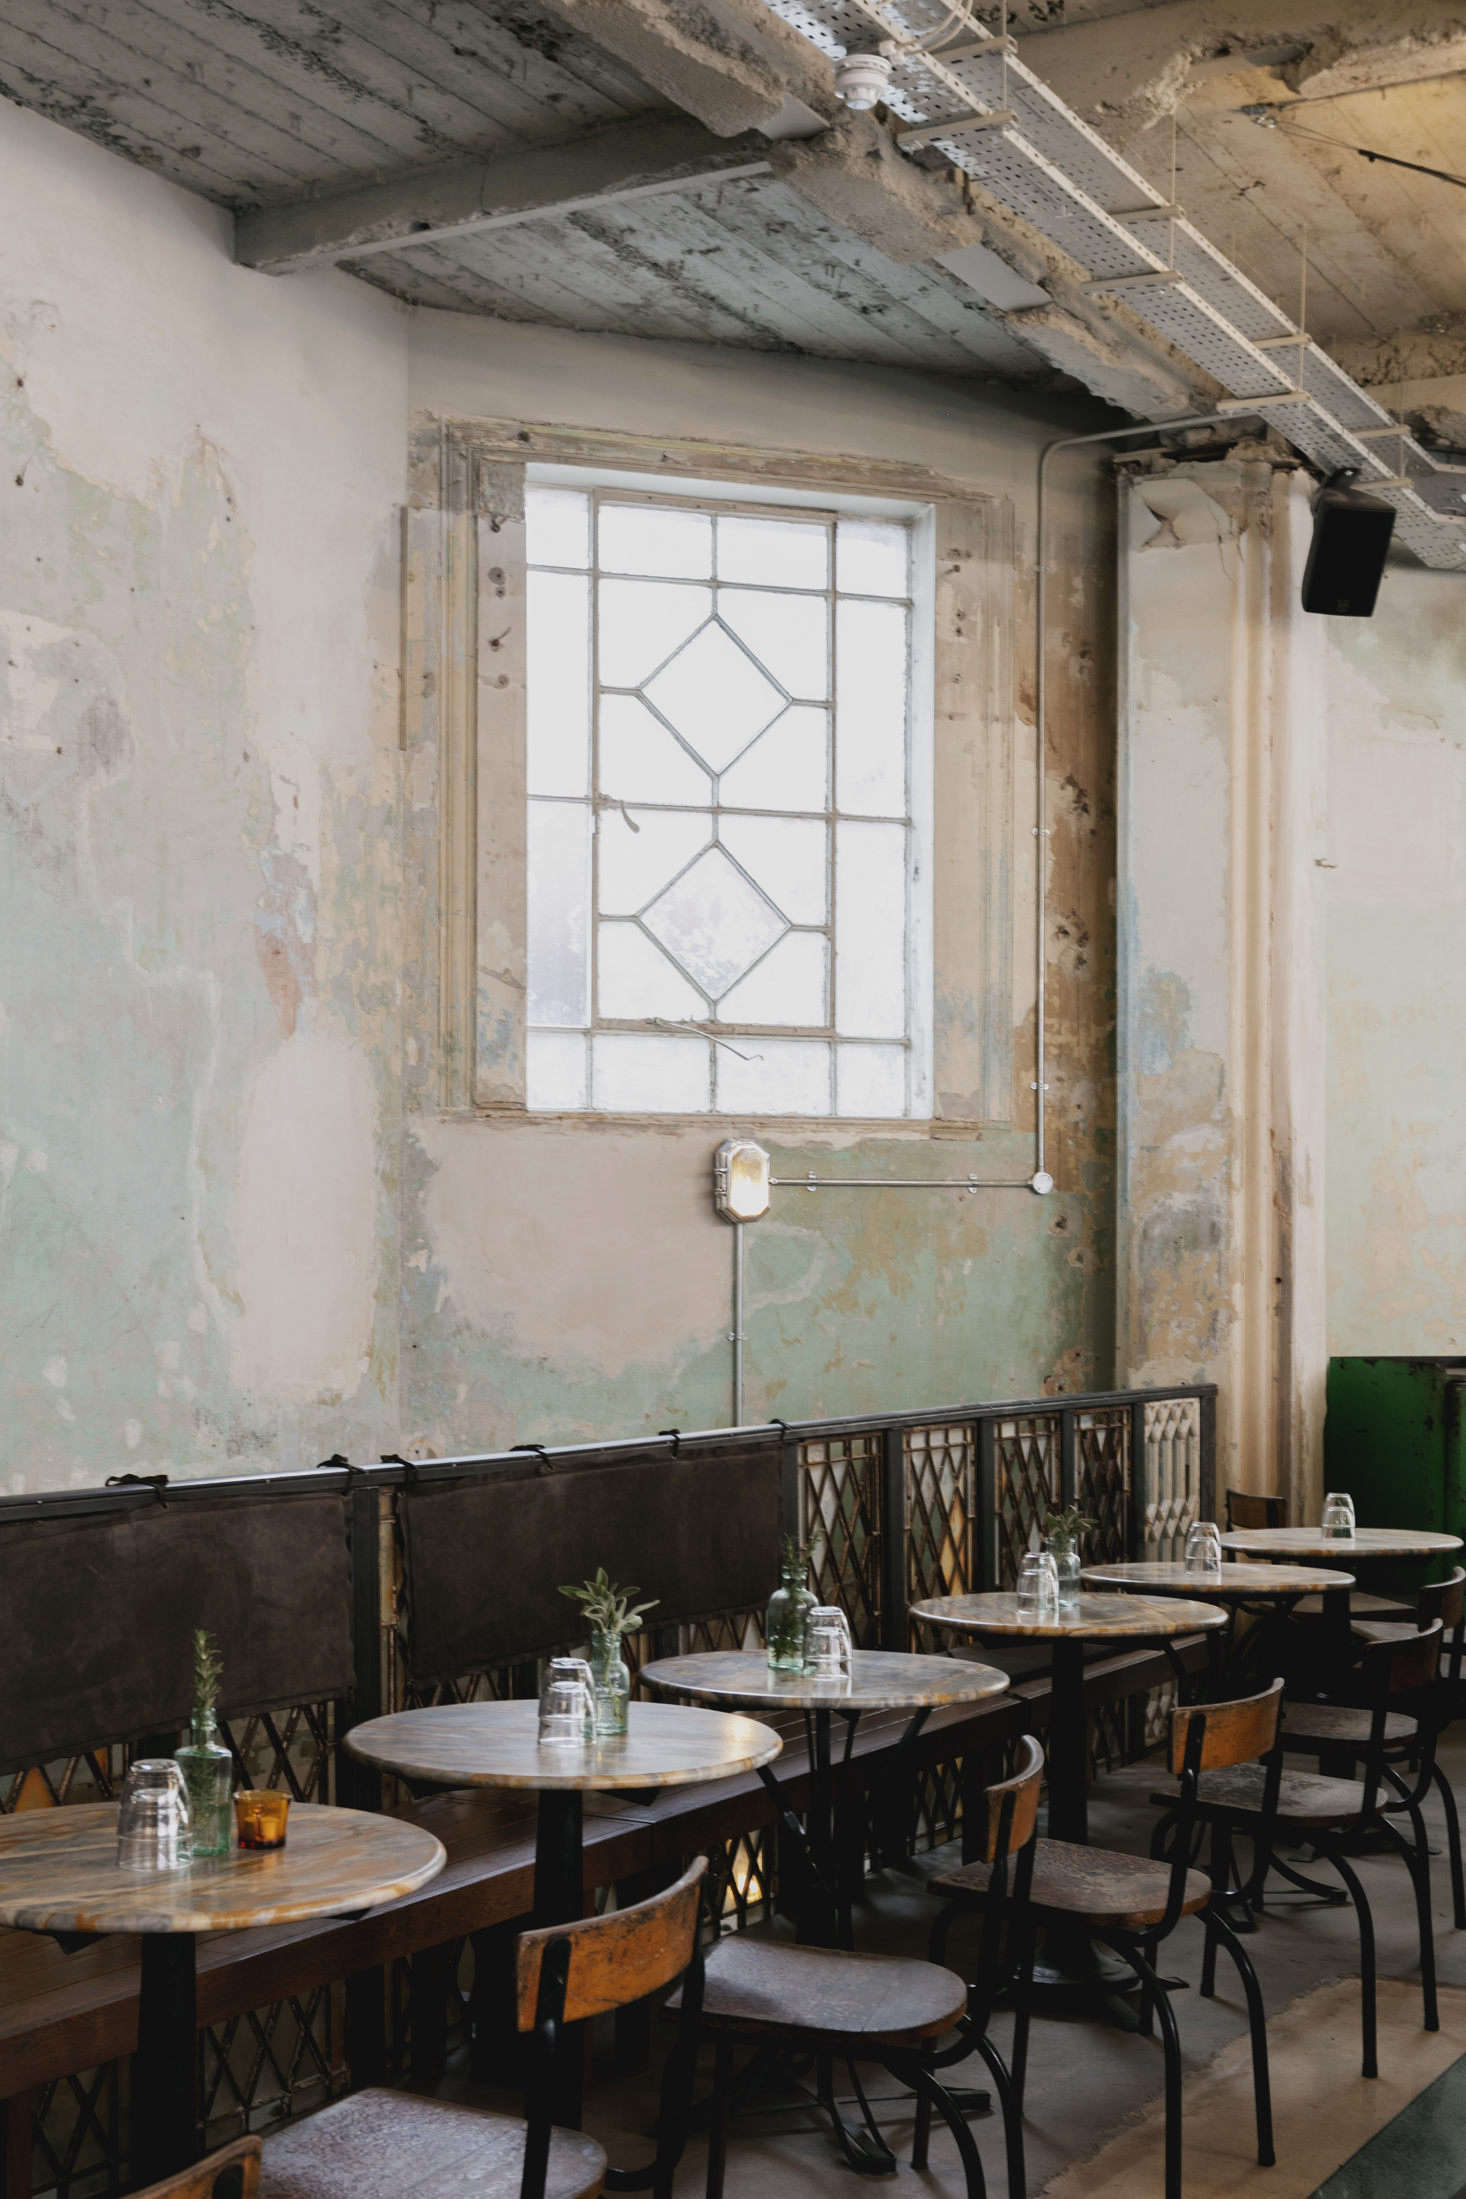 The walls were left stripped and patinated, to charming effect. Not shown is the open kitchen, designed with market stalls in mind and raised so that diners can see in. Photo by Mariell Lind Hansen, courtesy of Red Deer.